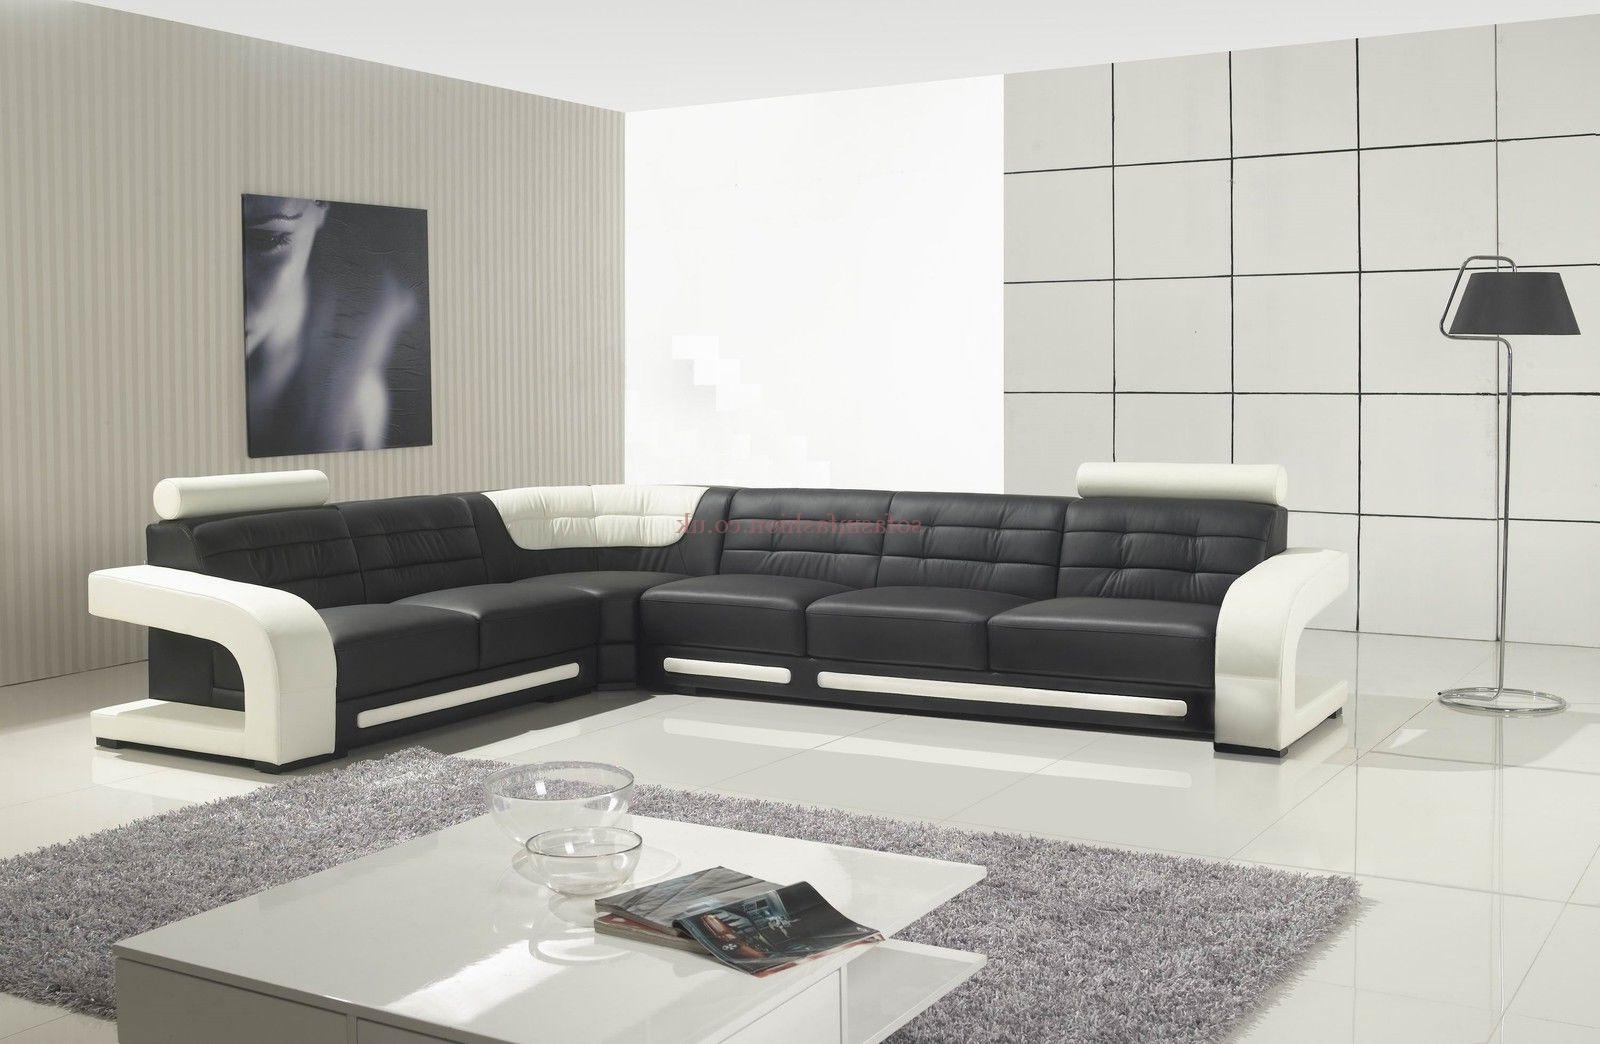 Most Recently Released Best Leather Corner Sofas With Leather Corner Sofa Black White Inside White Leather Corner Sofas (View 11 of 15)